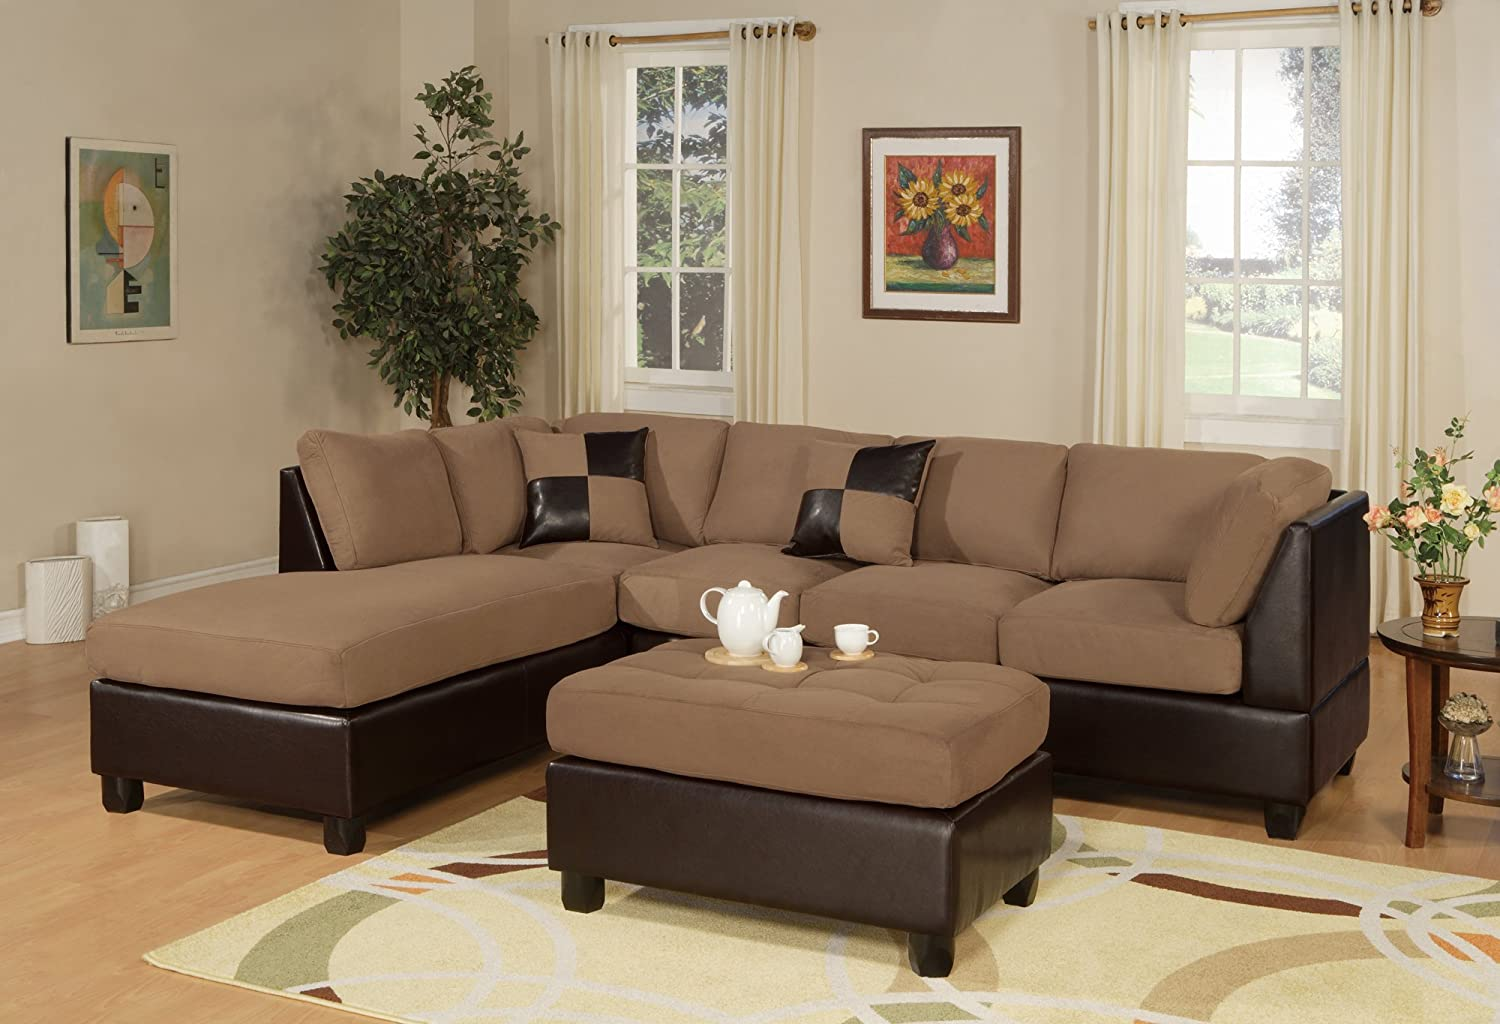 Amazon.com: Bobkona Hungtinton Microfiber/Faux Leather 3 Piece Sectional  Sofa Set, Saddle: Kitchen U0026 Dining Part 43